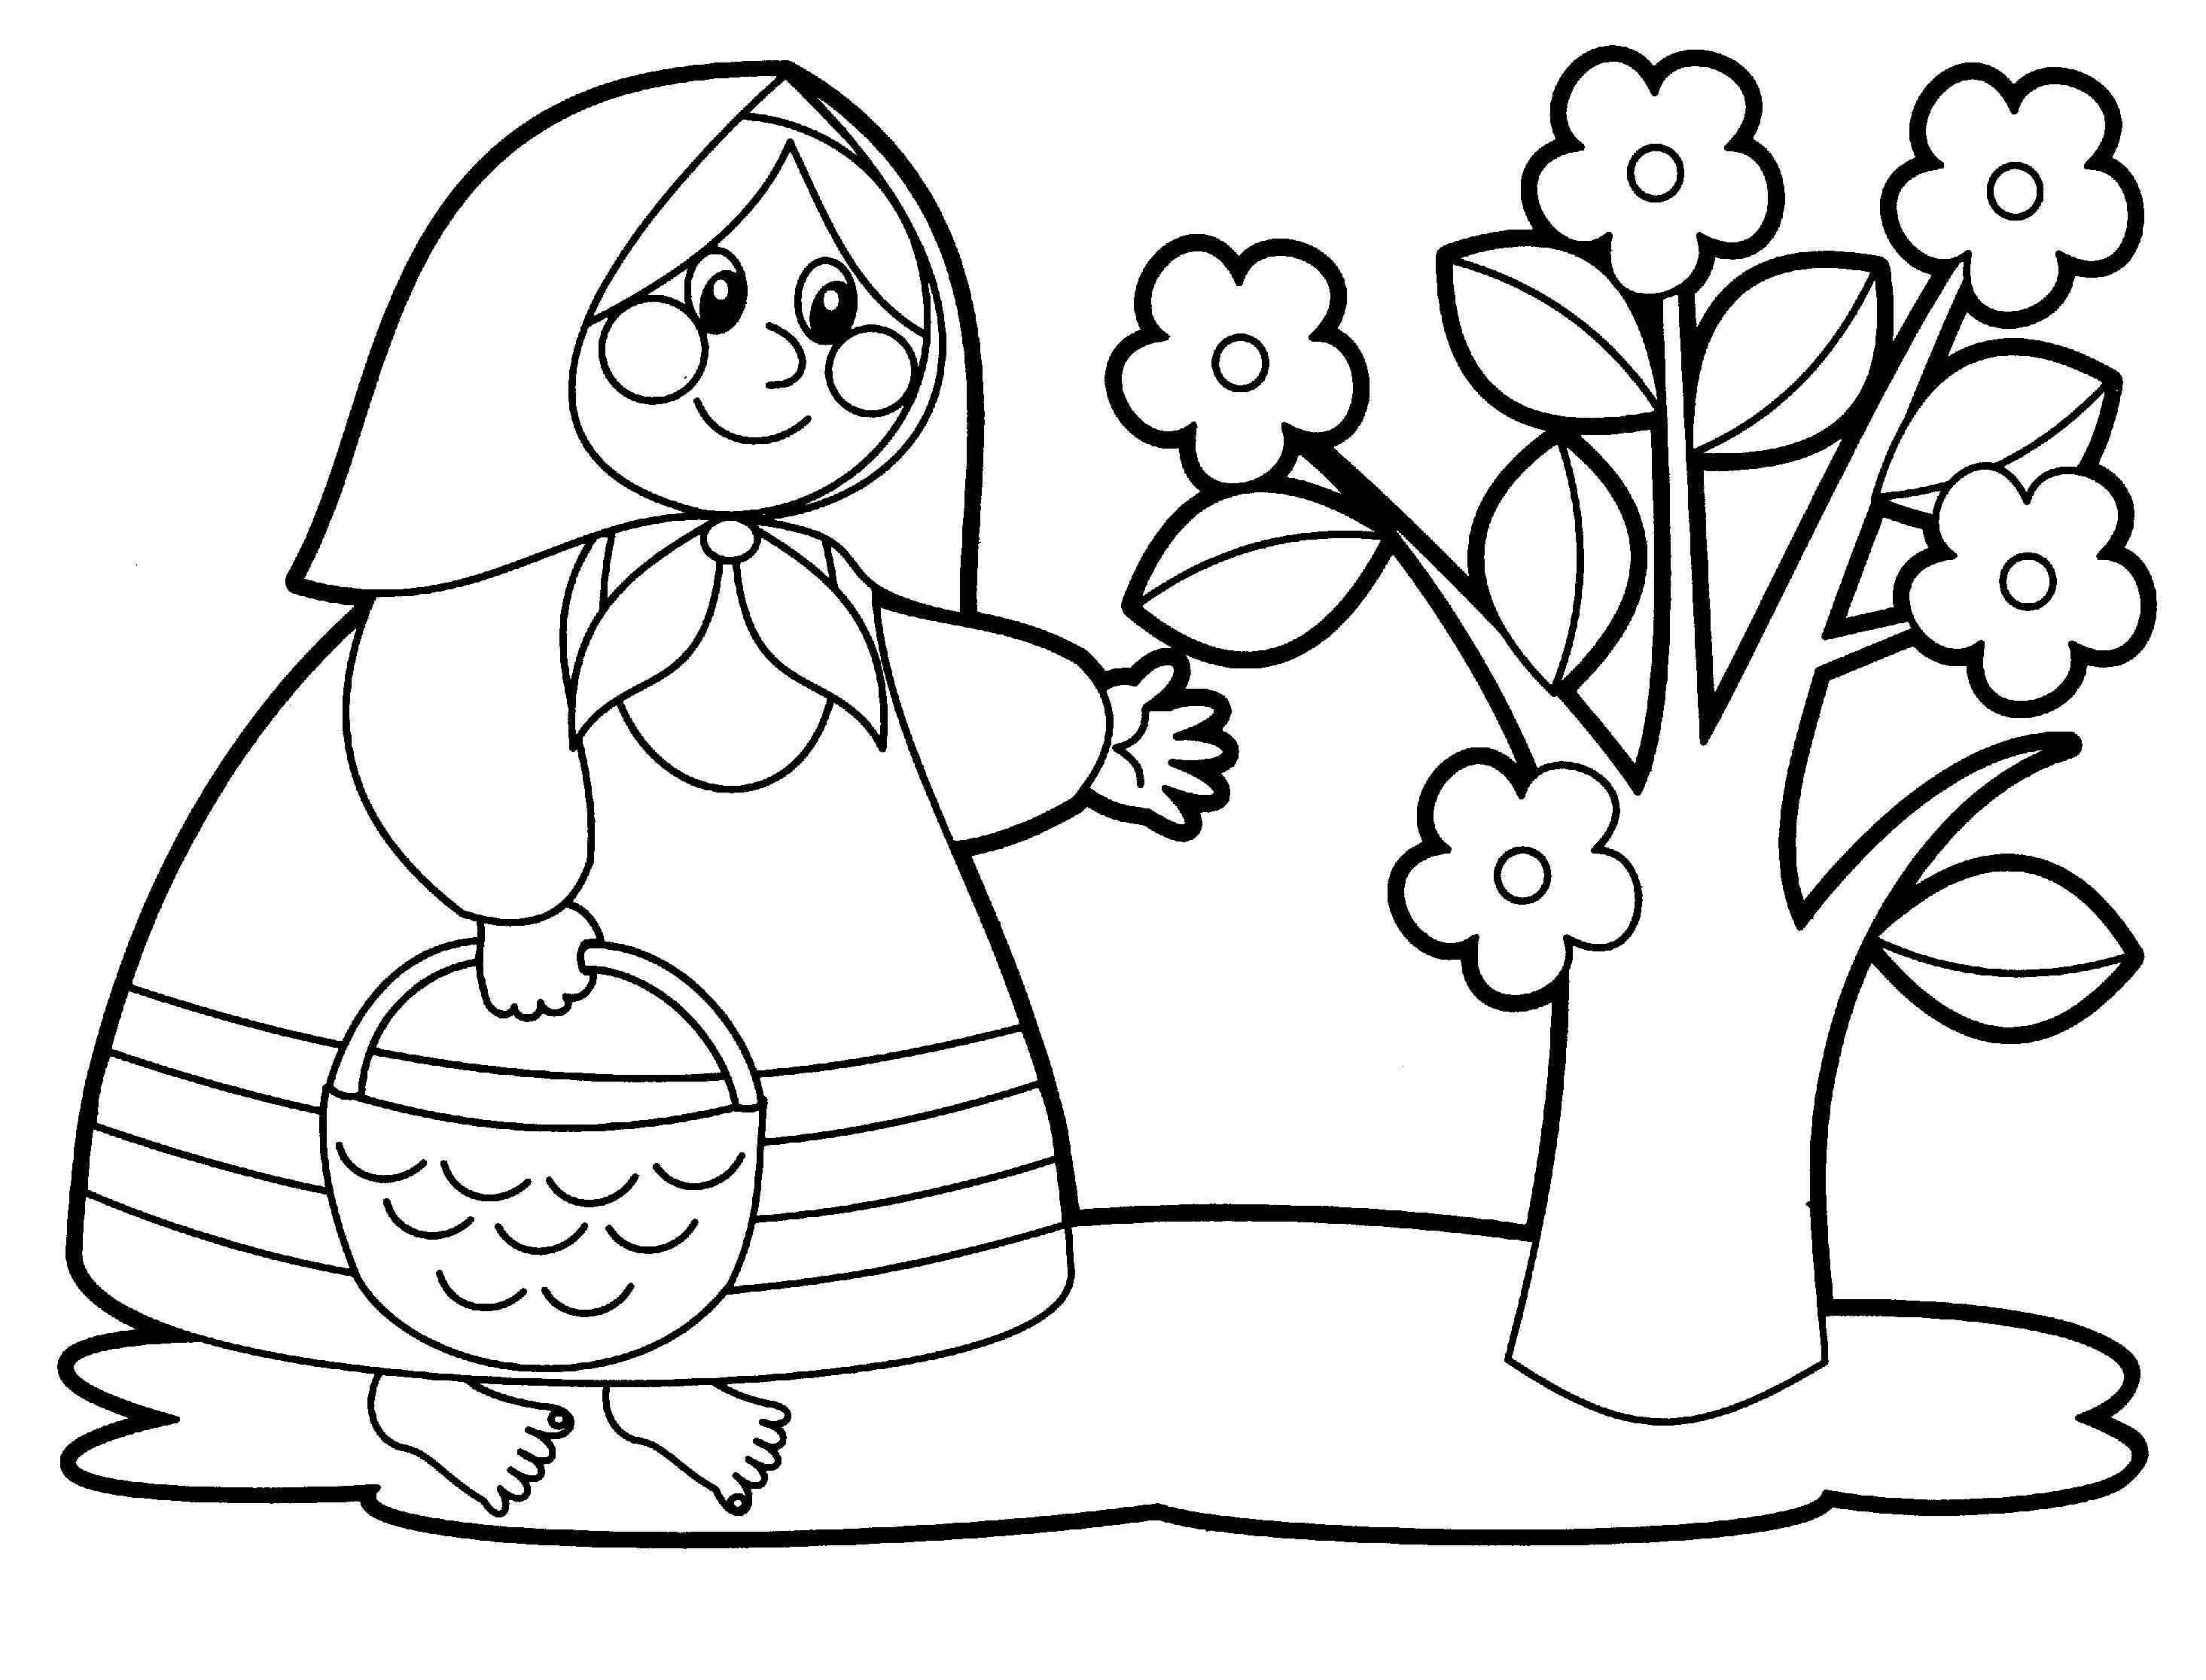 Coloring pages for children of